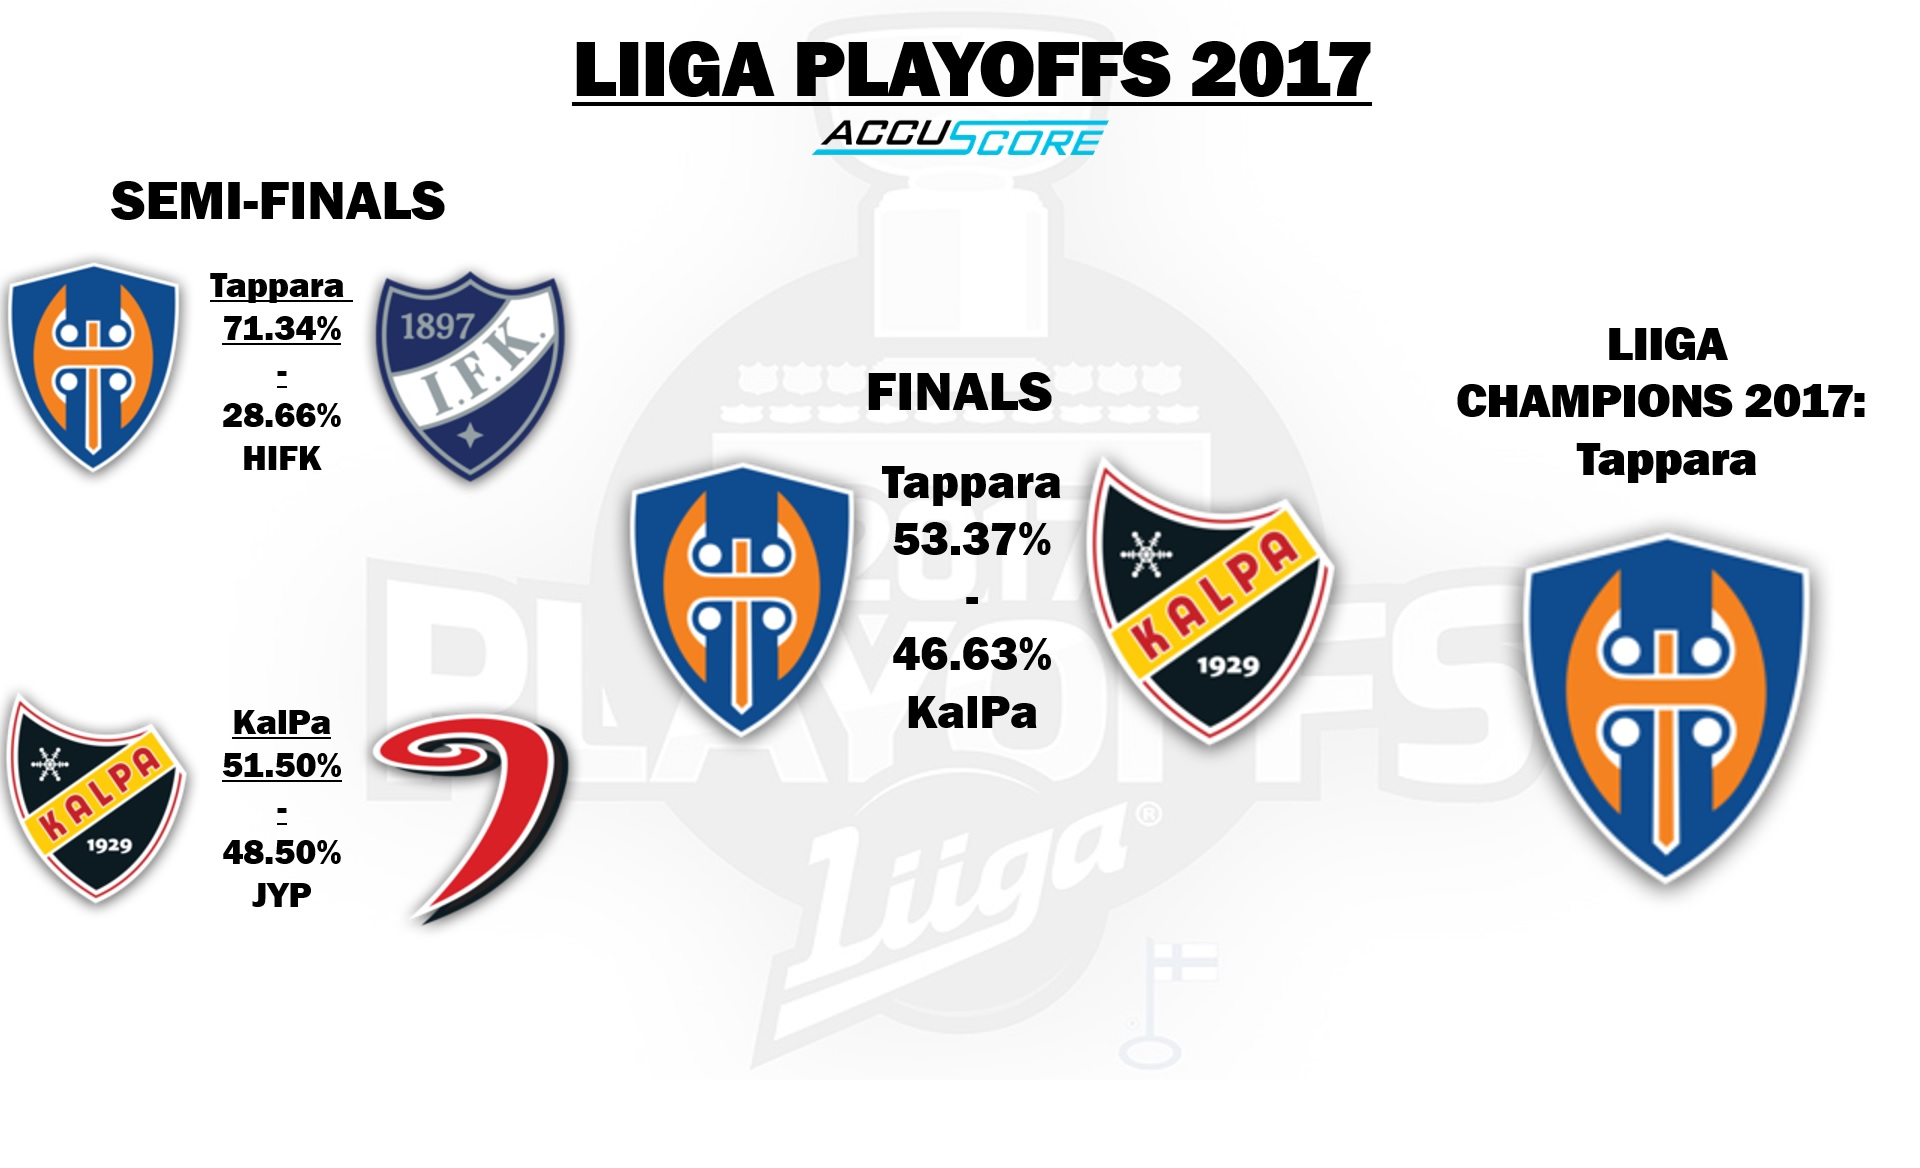 Accuscore's bracket and predictions for Liiga Playoffs 2016/17 - Semi-Finals